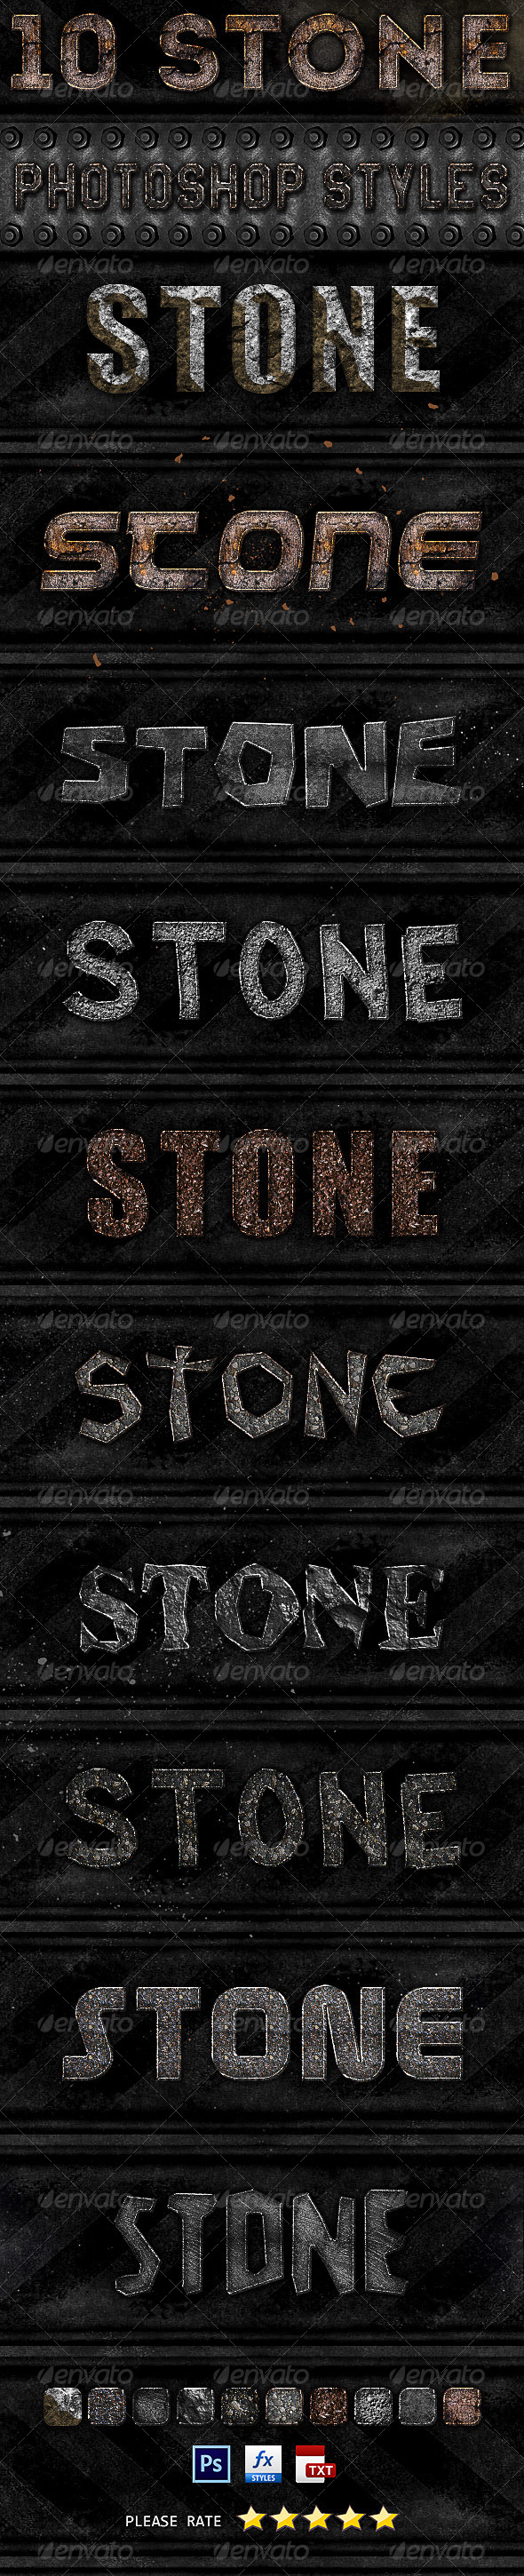 GraphicRiver 10 Stone Photoshop Styles 6786622